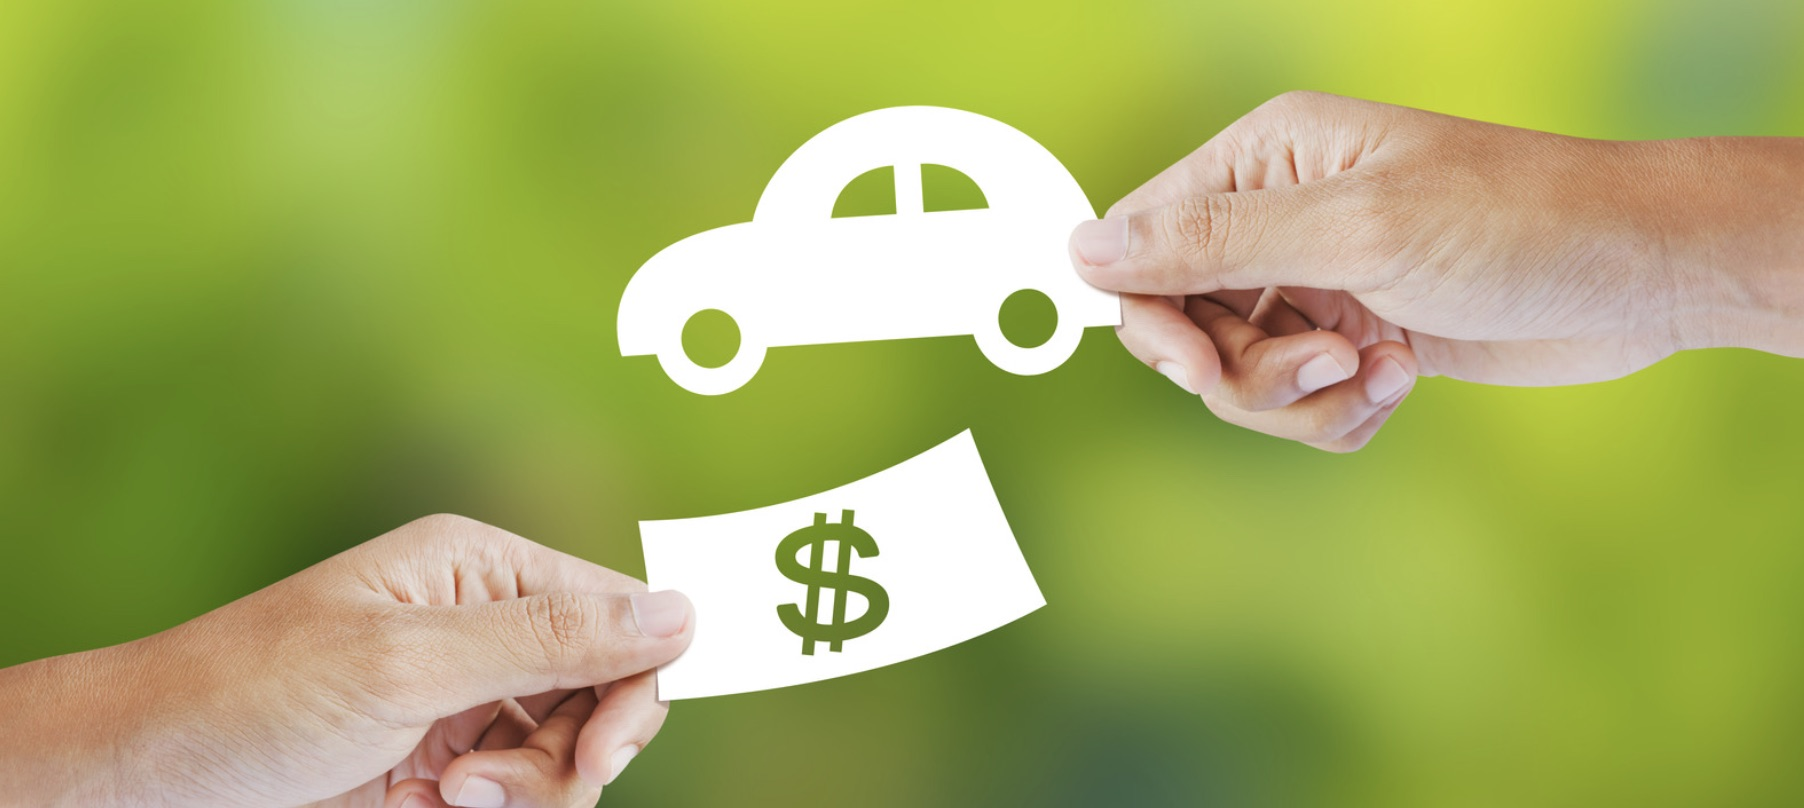 Hands exchanging graphic of car for graphic of dollar bill.